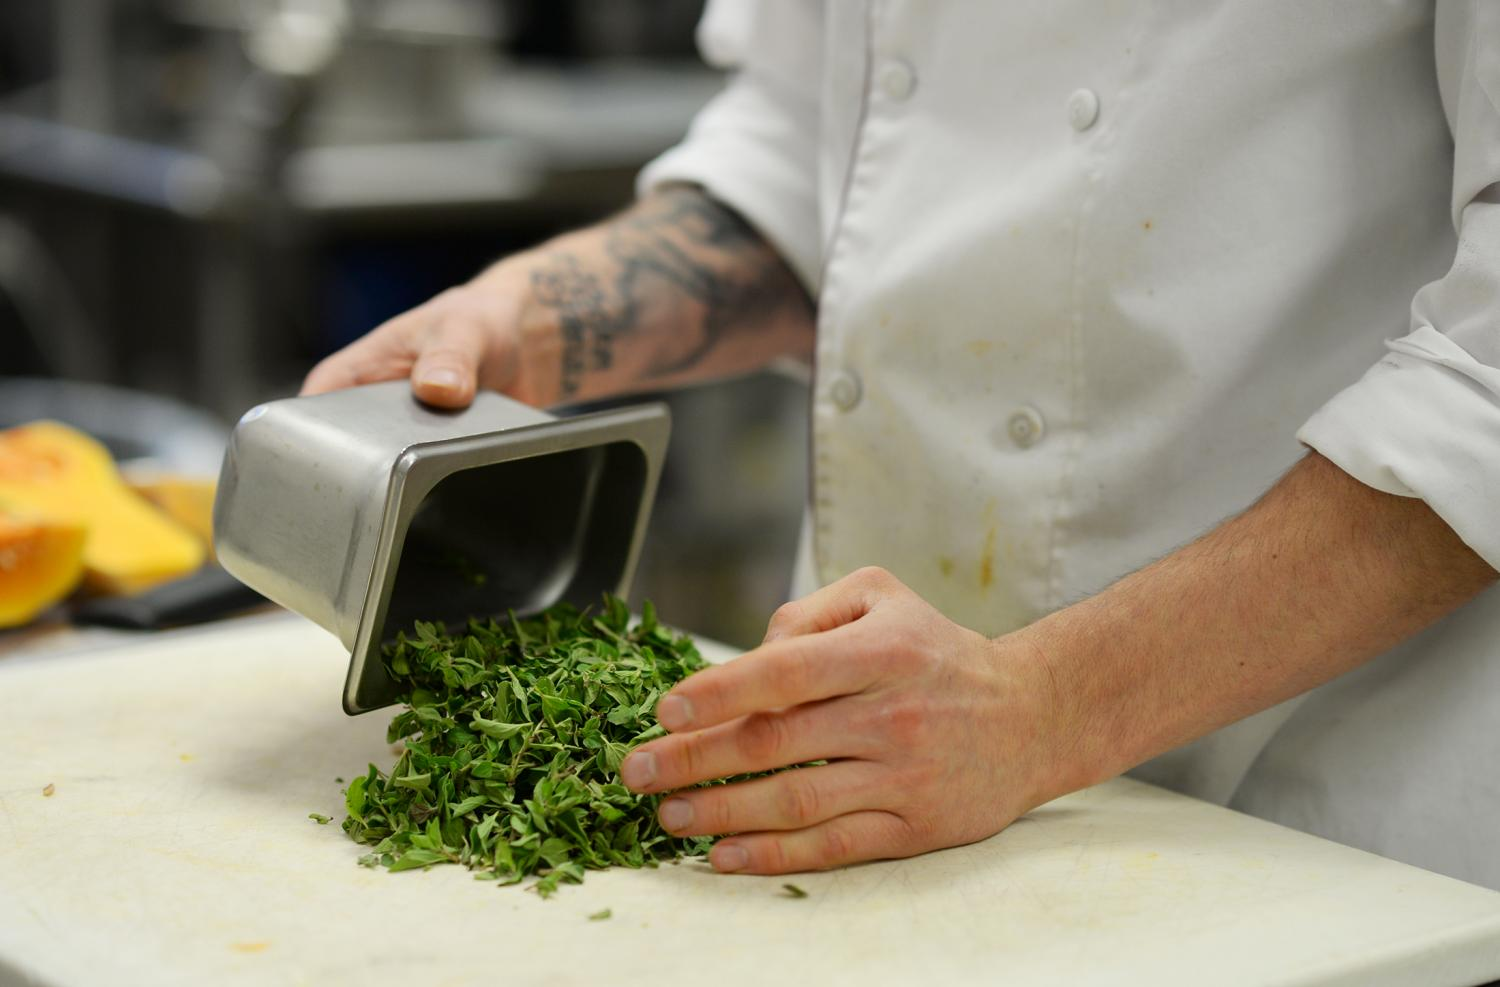 Executive Chef Jason Butcherite prepares Hillside Cafe's menu of fresh, local ingredients. The quicker people consume food from when it is first harvested, the more nutrients they receive compared to long-traveled and less fresh foods.